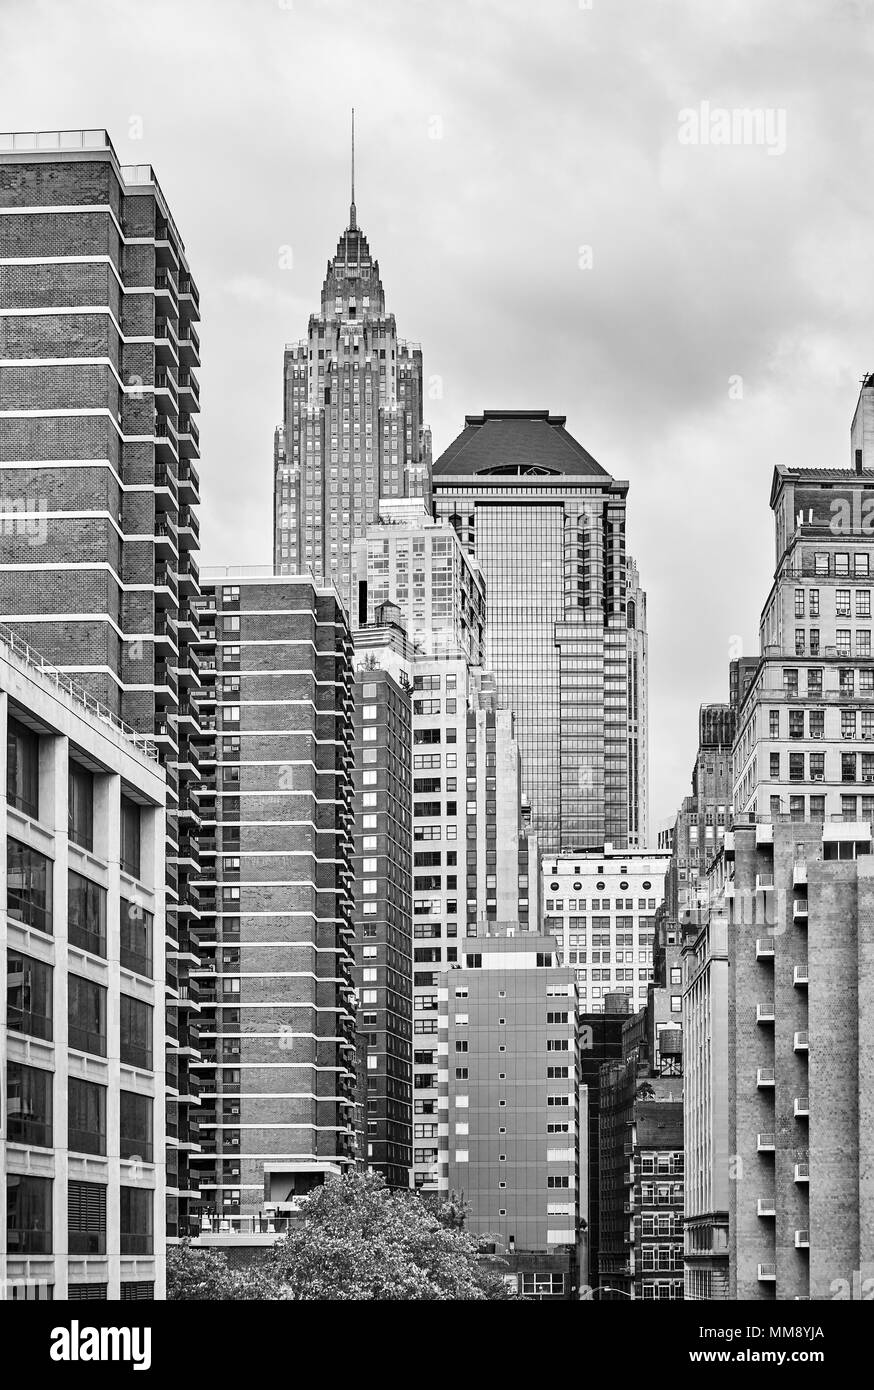 Black and white picture of New York City architecture, USA. Stock Photo